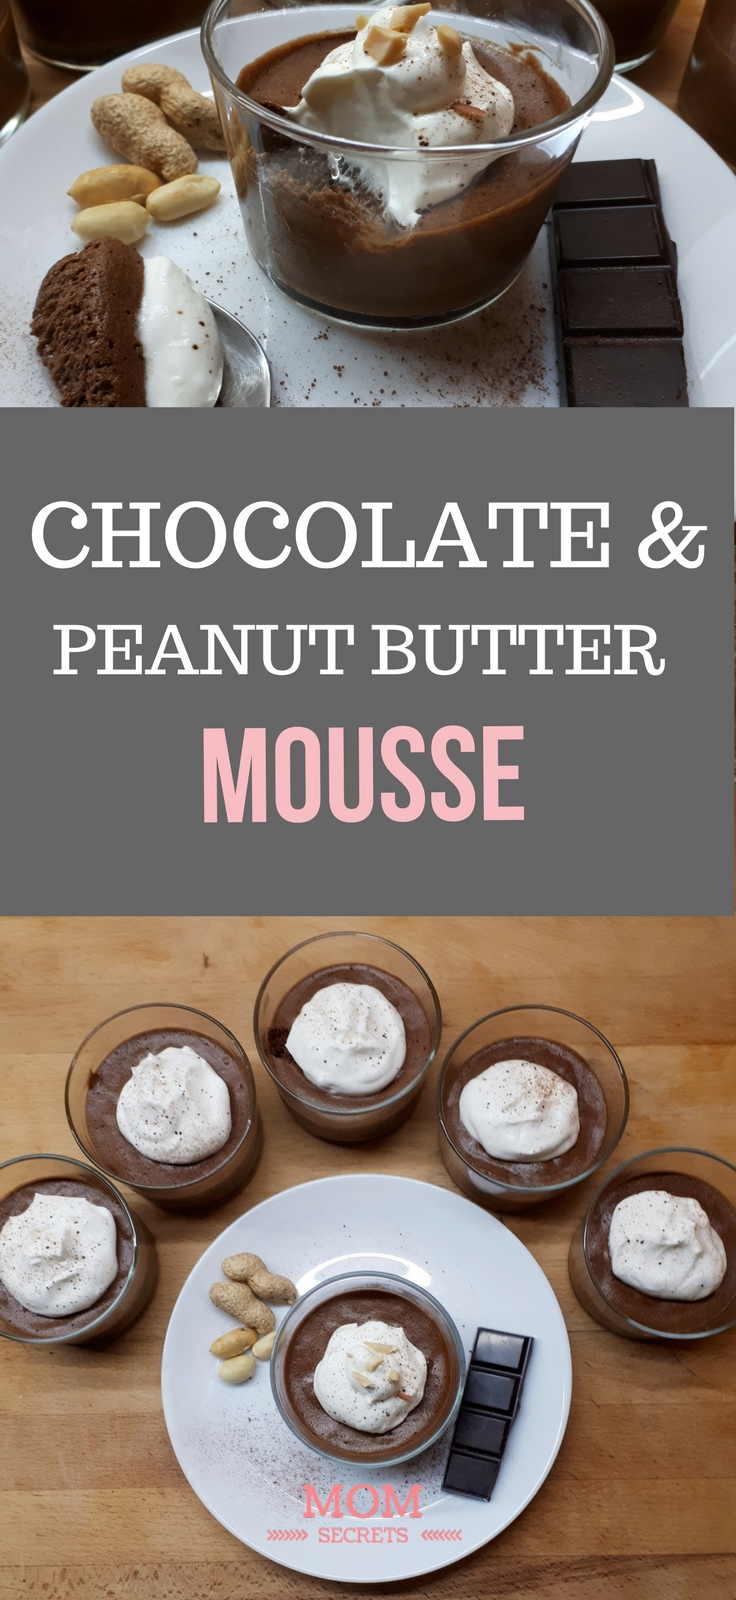 This chocolate mousse with peanut butter it's incredibly easy to do and it's so versatile: you can use it for a party or you can serve it in a dinner of any weekday. It´s also perfect for the kid parties. It´s so creamy, rich and flavorful. The consistency and texture are just so perfect!